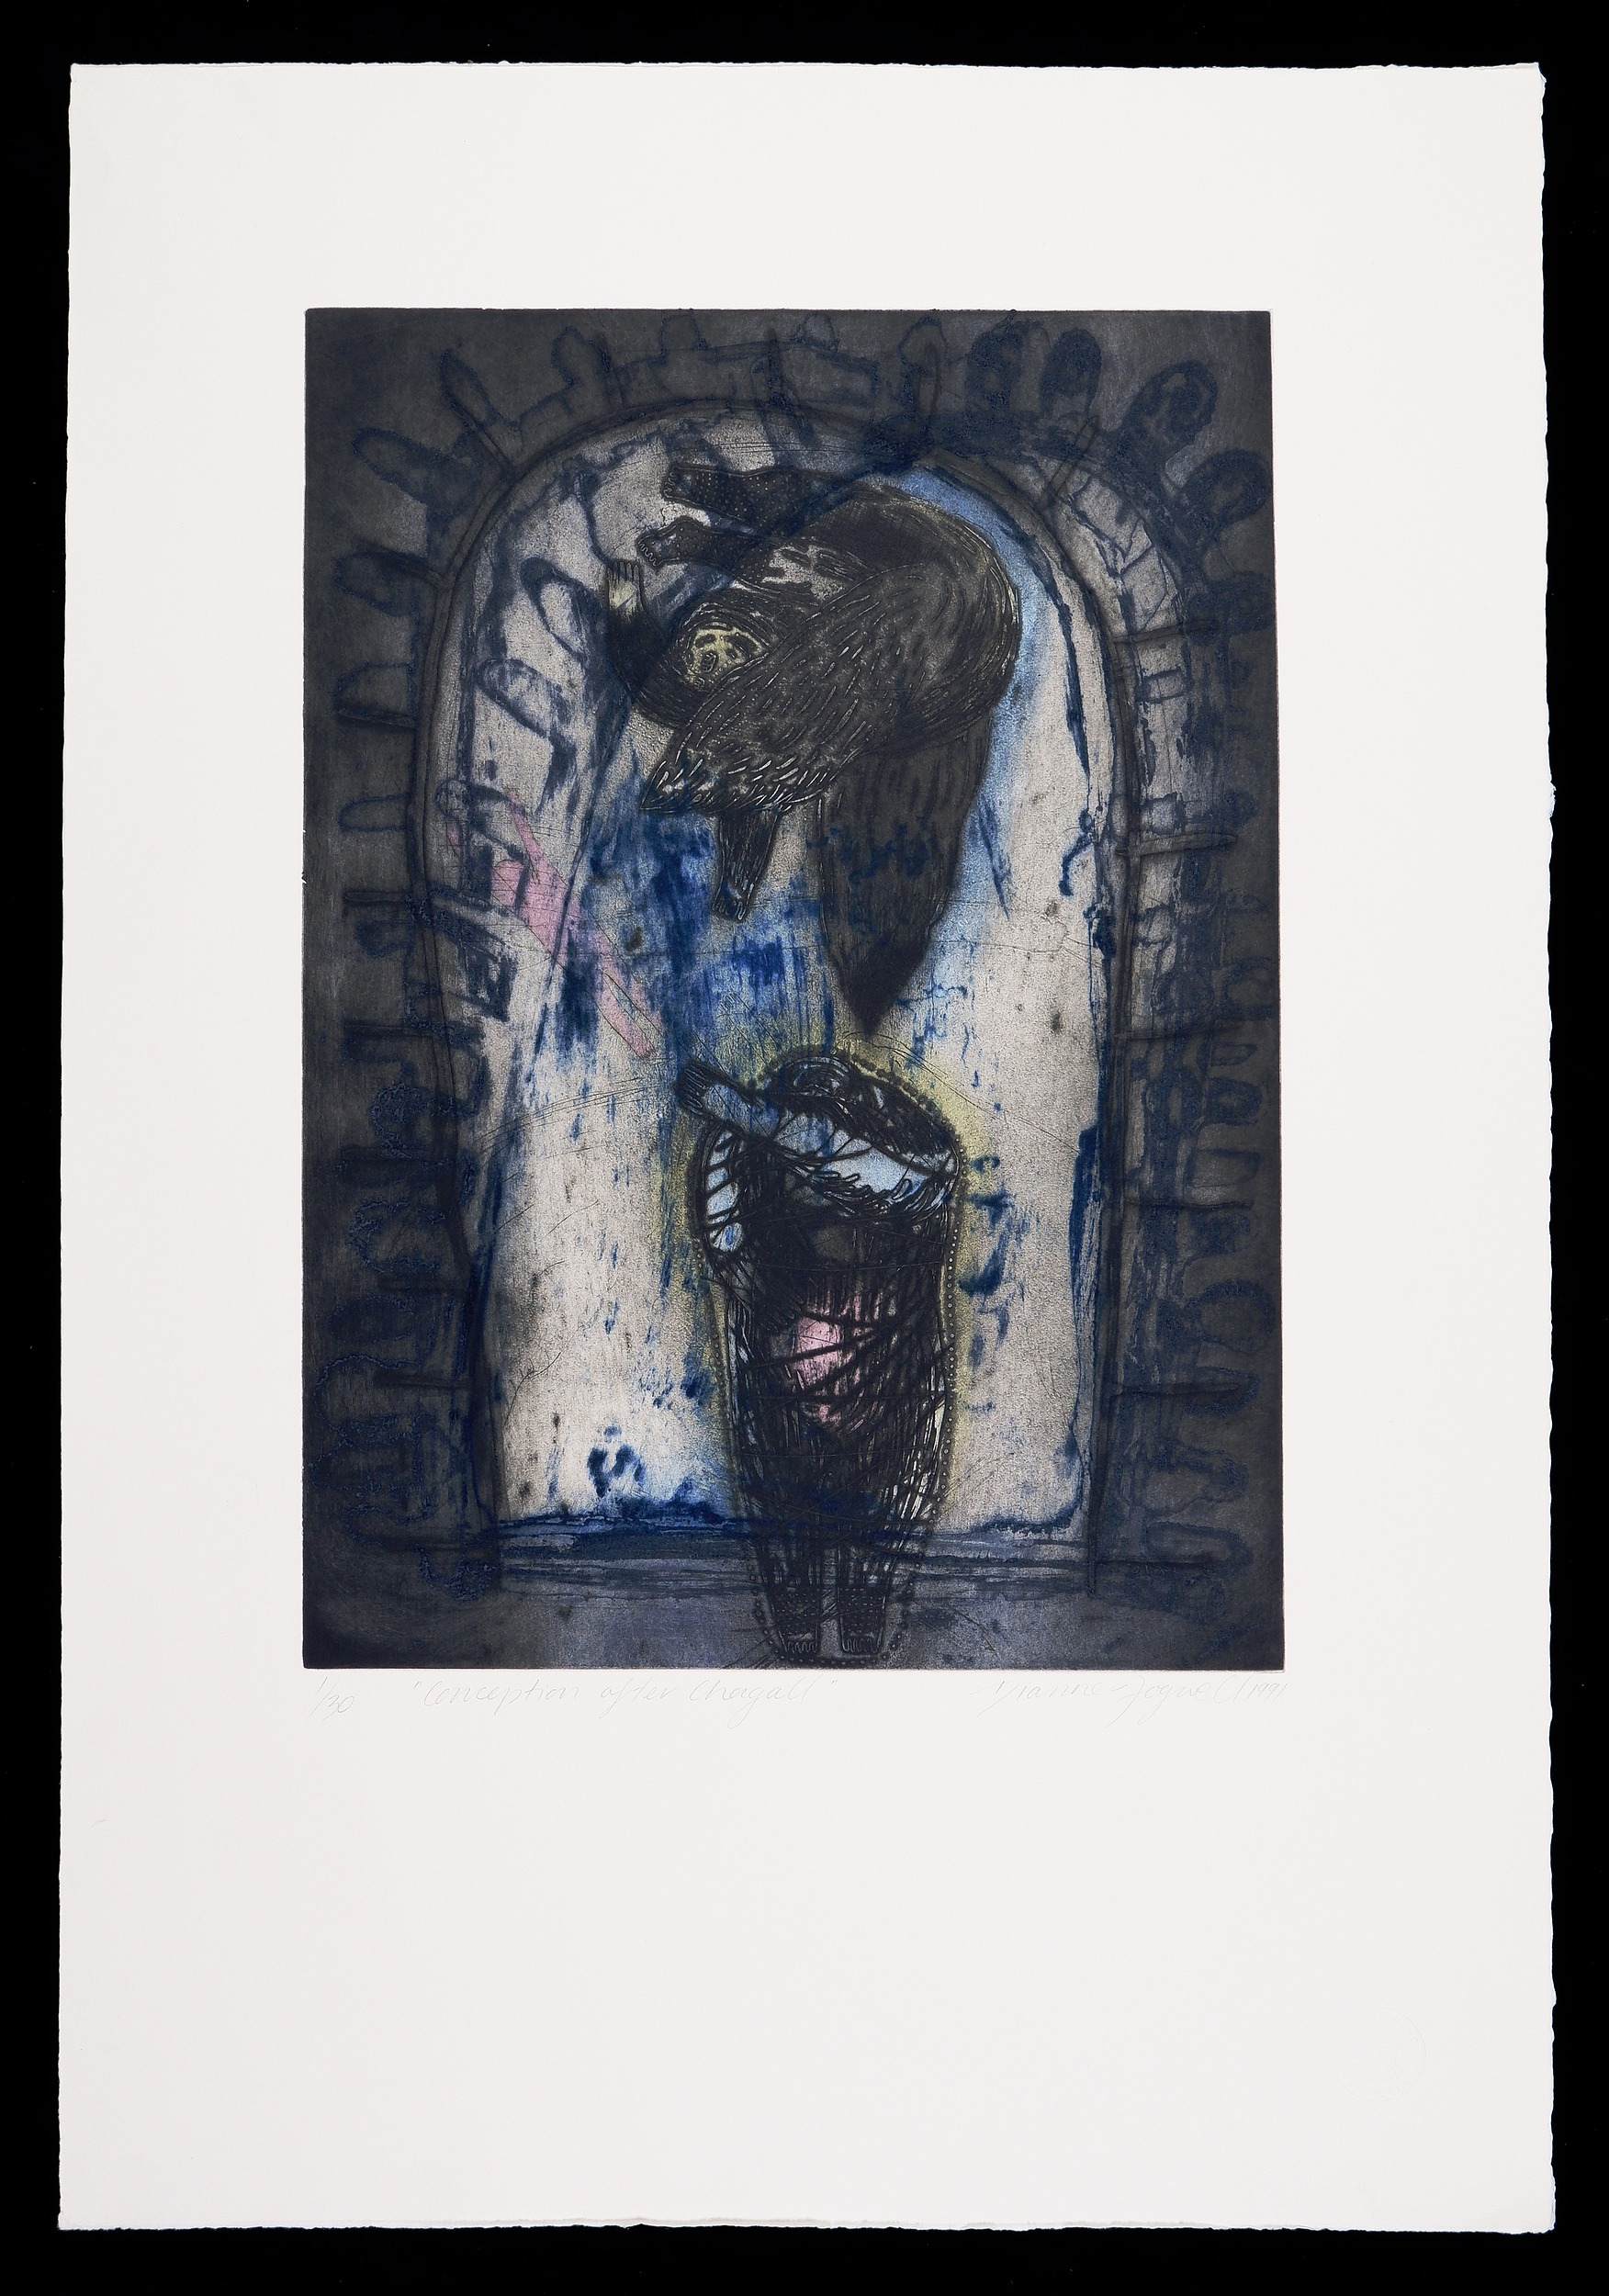 'Dianne Fogwell (born 1958), Conception After Chagall 1991, Collagraph Edition 1/30, 49.5 x 39.5 cm (image size)'